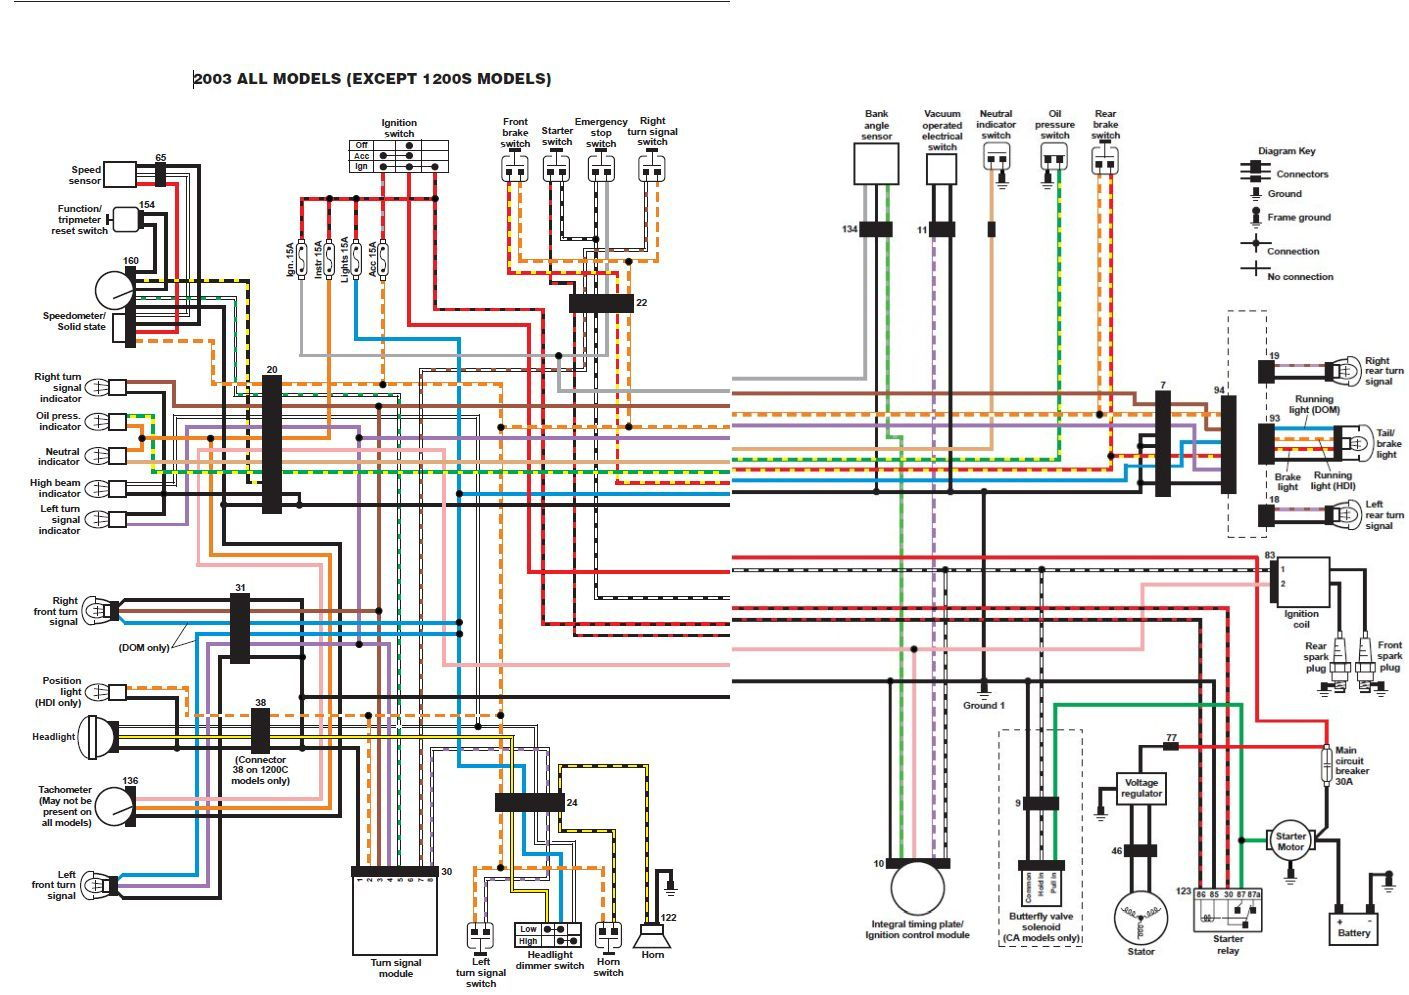 Diagram Harley Sportster Sd Sensor Wiring Diagram Full Version Hd Quality Wiring Diagram Blogxgoo Mefpie Fr